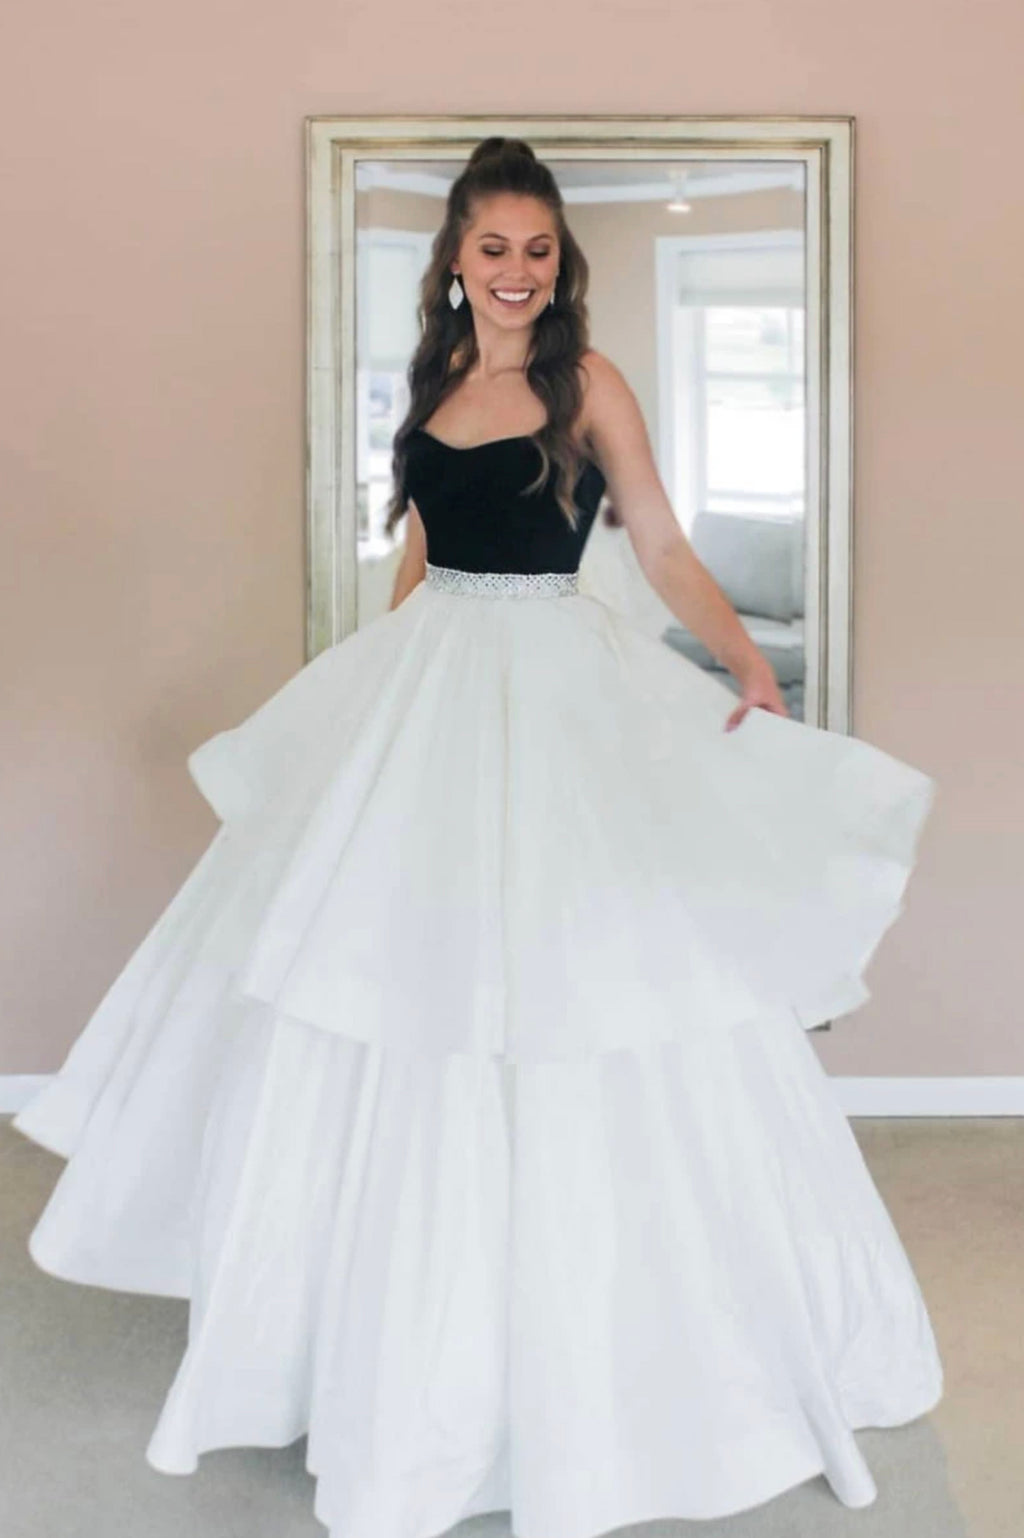 White satin long A line ball gown dress formal dress